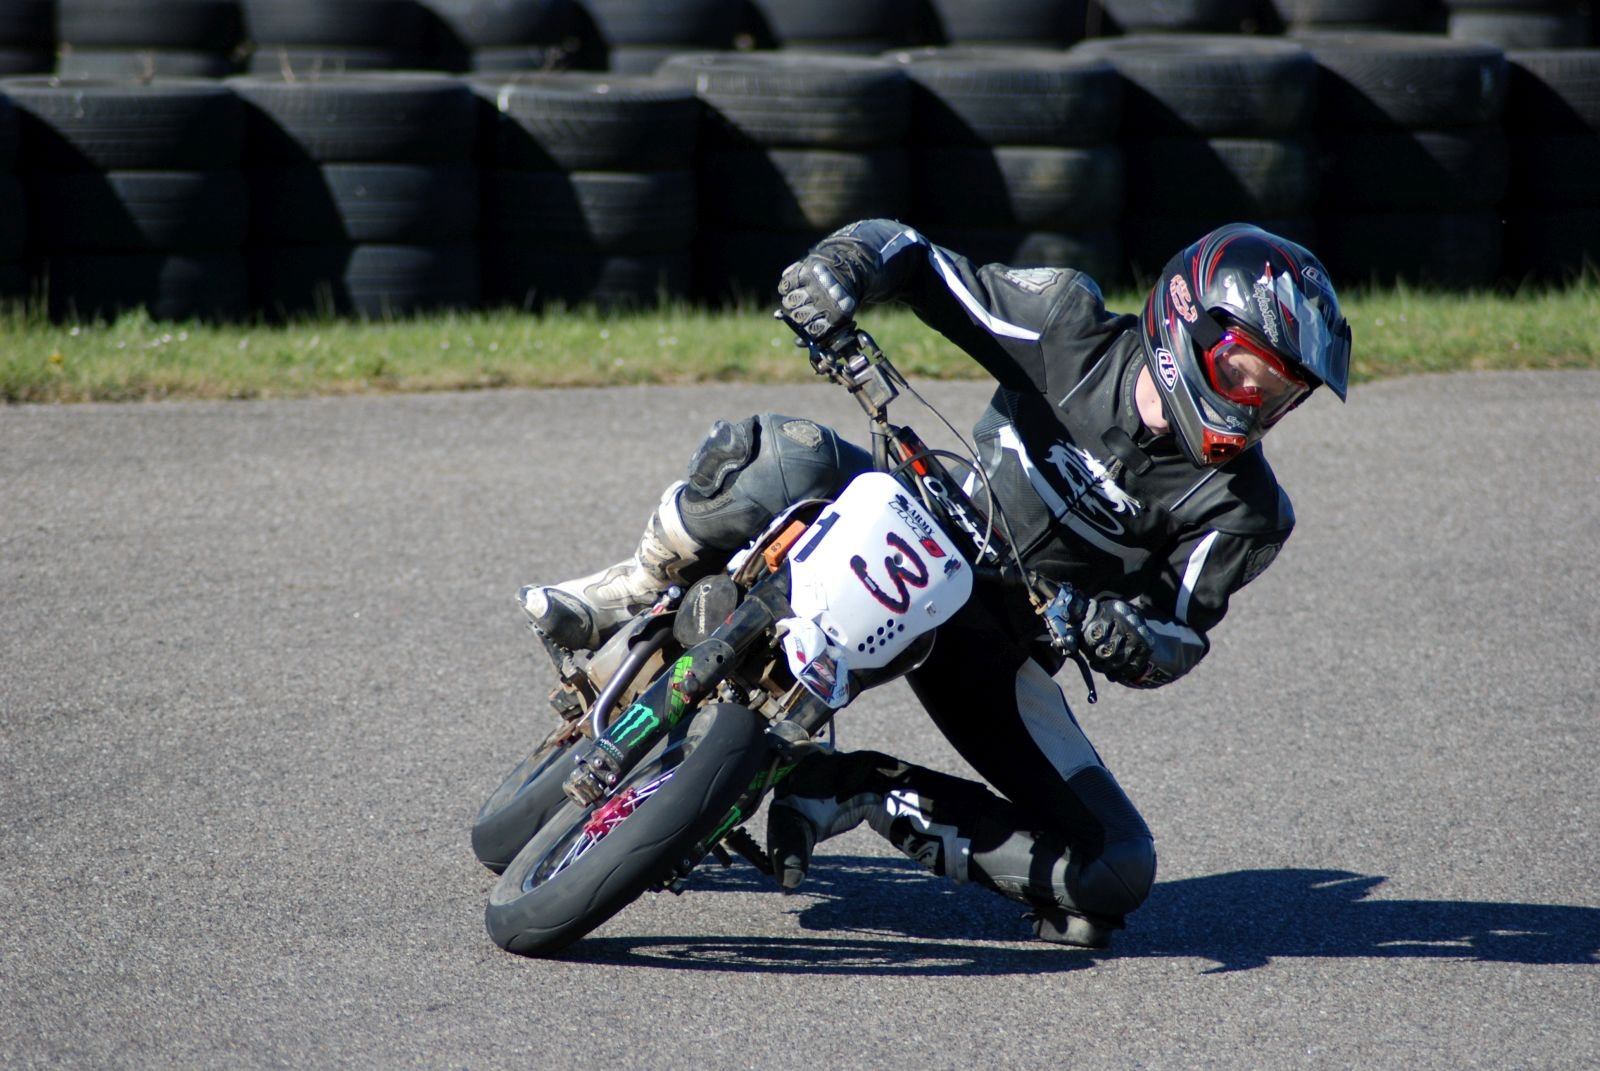 Supermotard_DM_ALS_2009 (15)